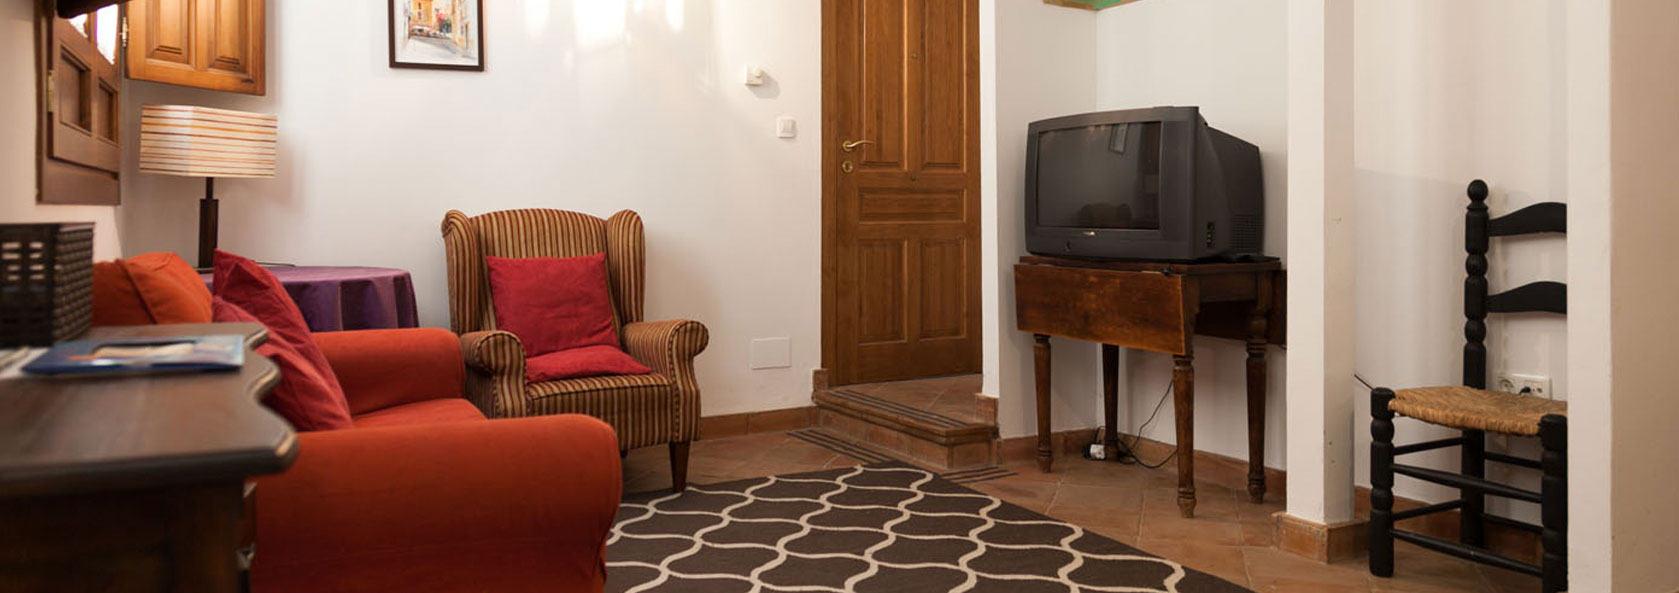 Accommodation in Granada